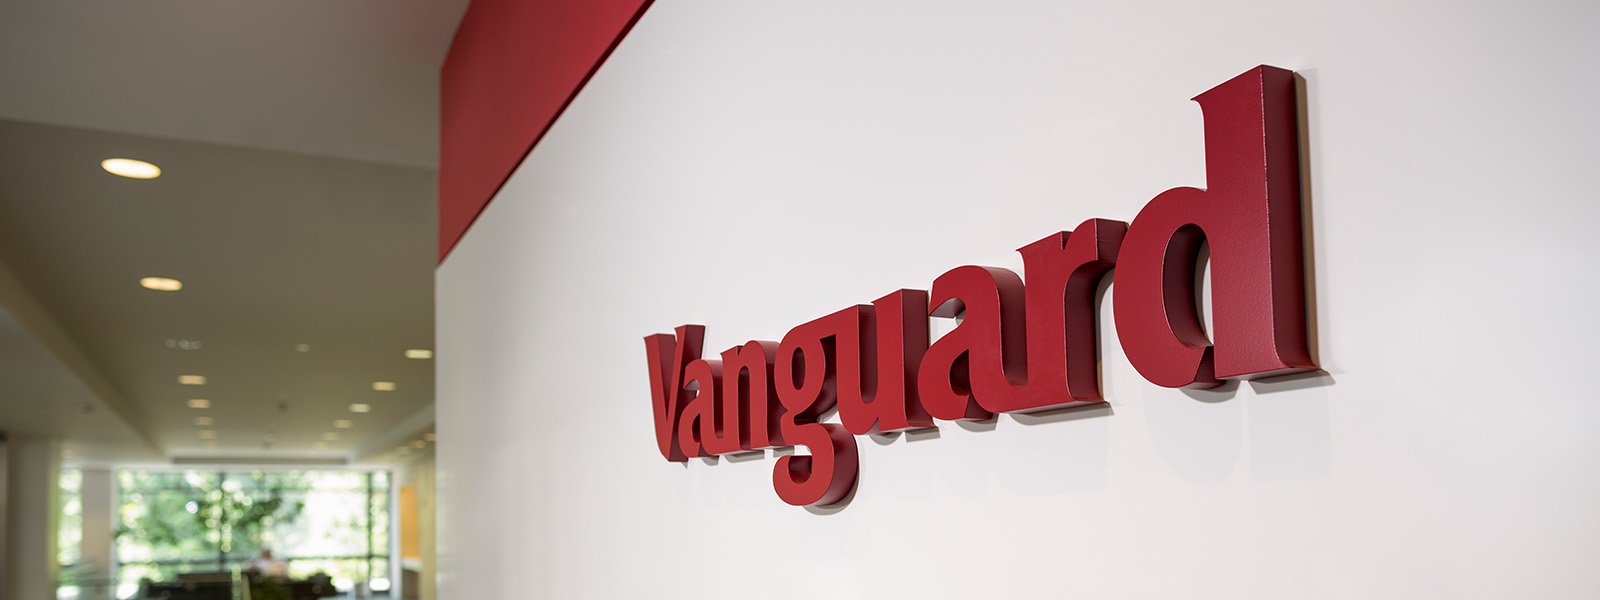 How to prepare for a Vanguard interview